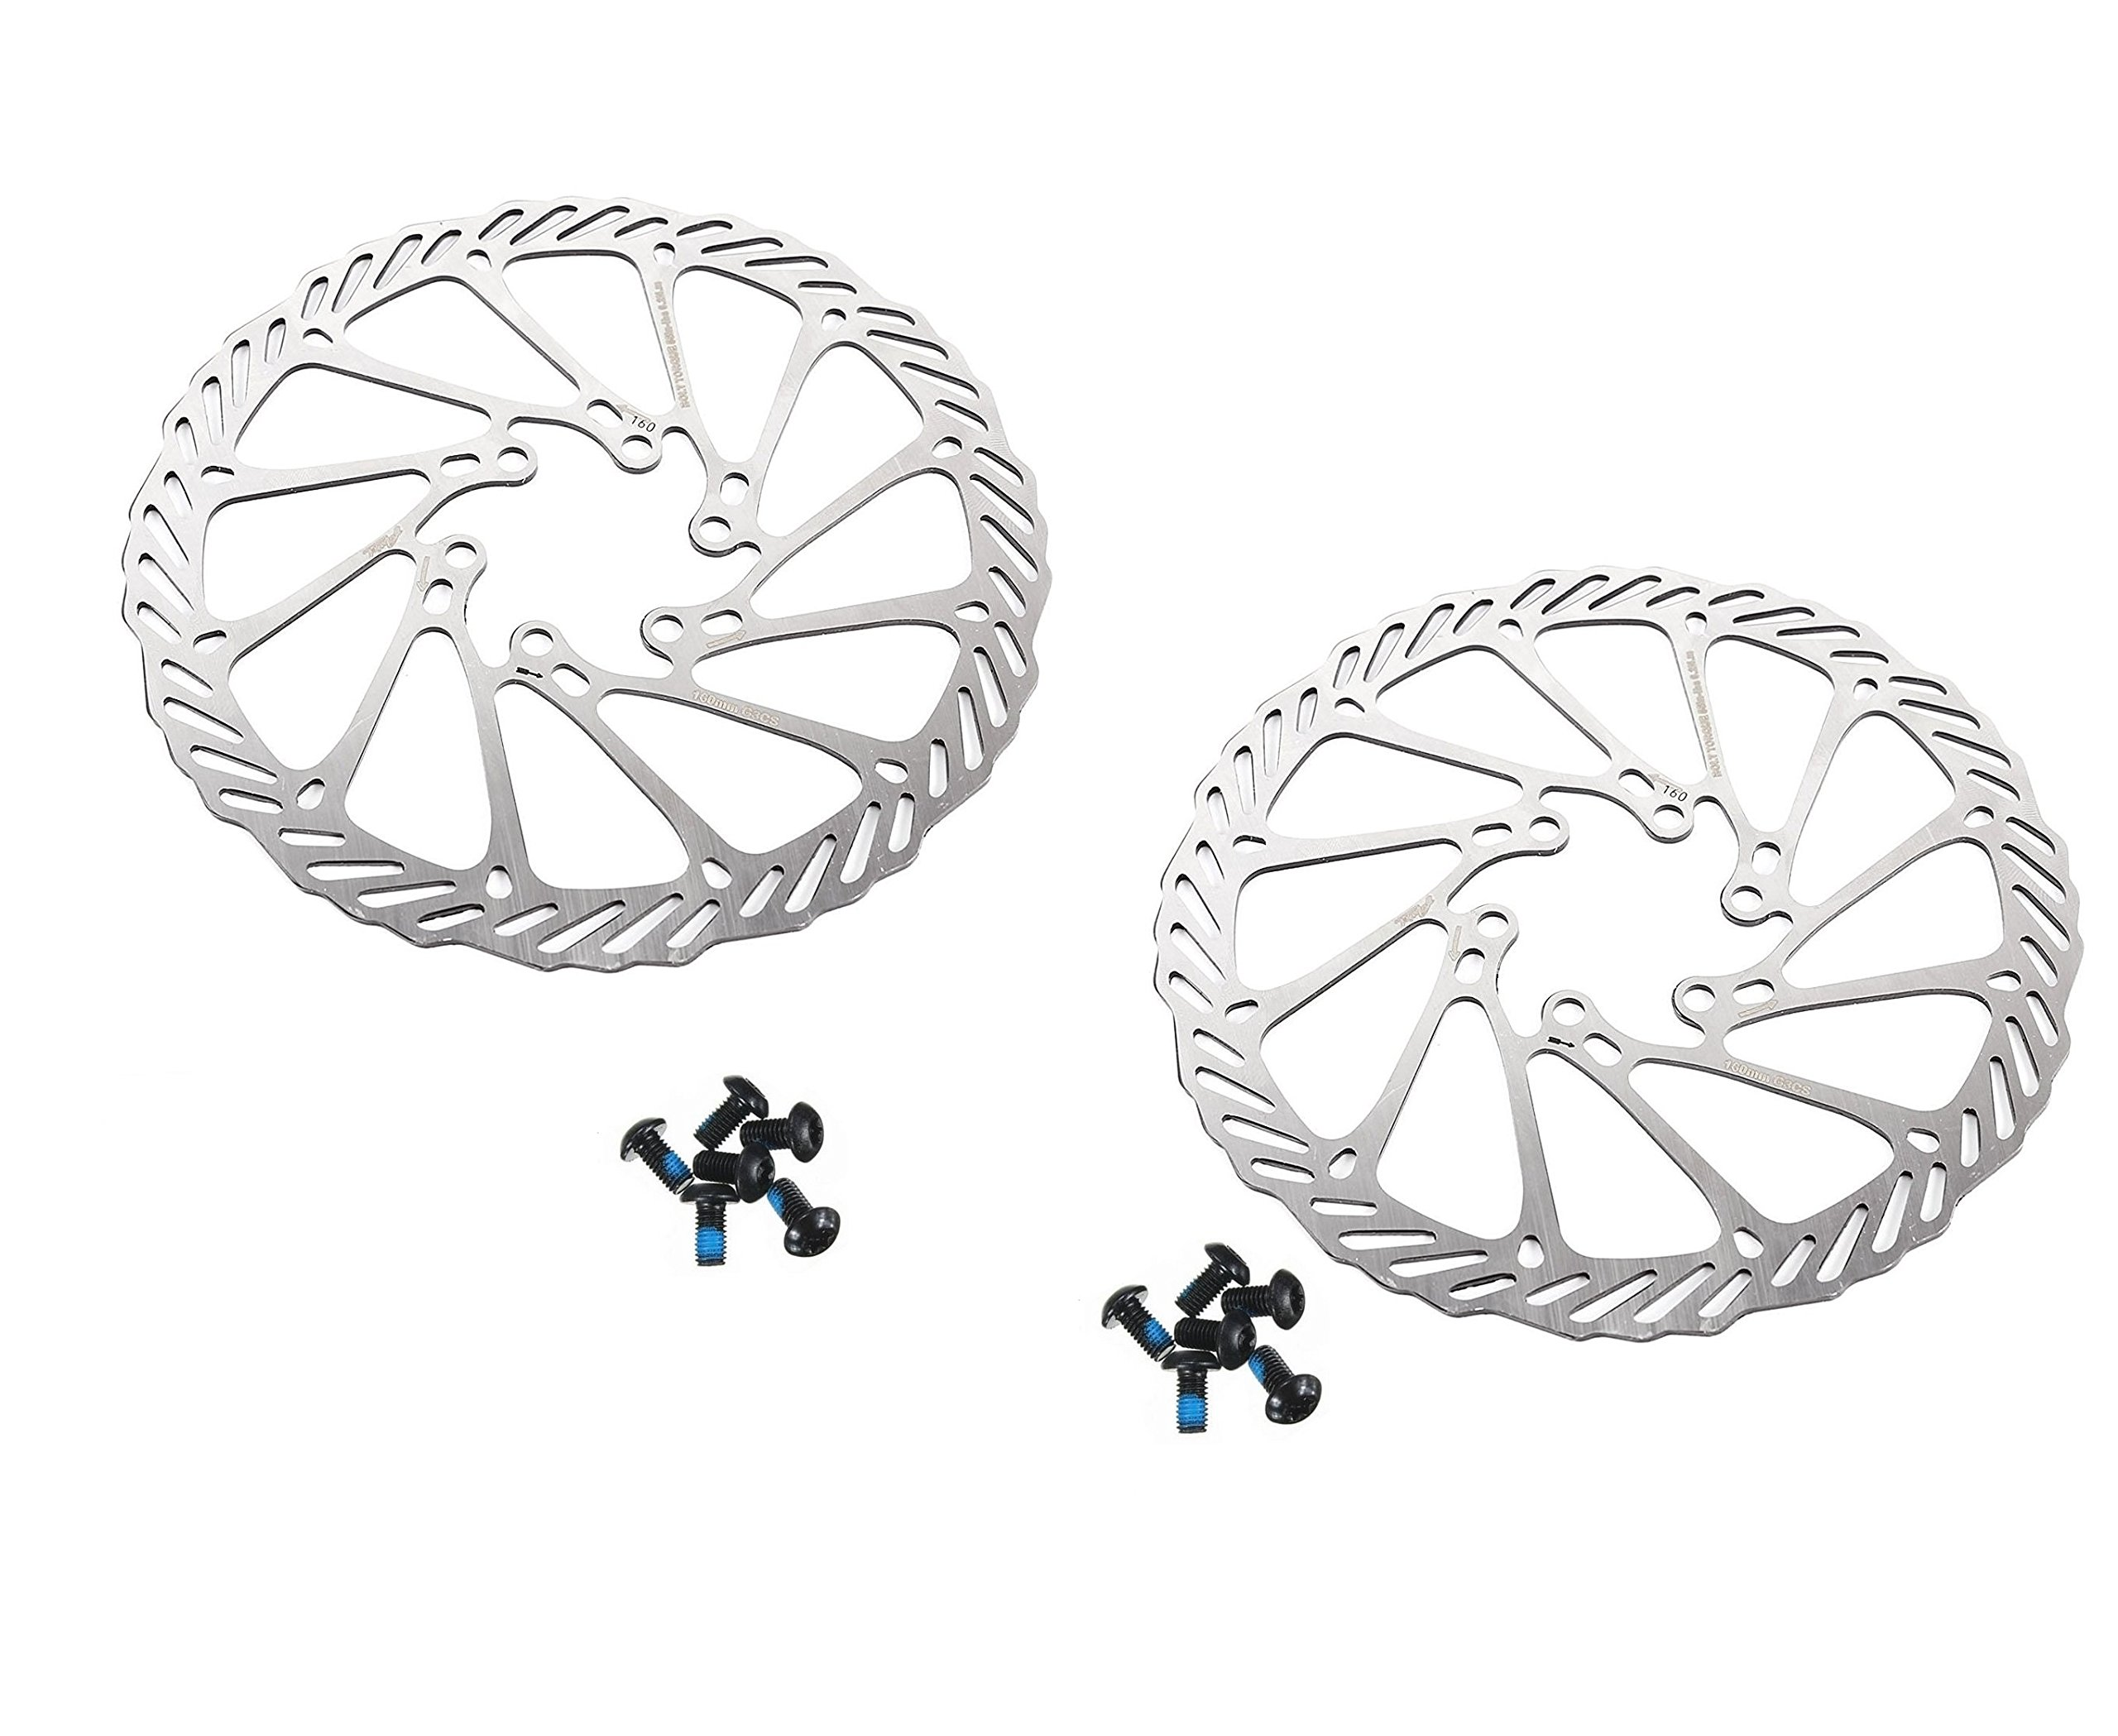 BlueSunshine MTB BB8 Mechanical Disc Brake Front and Rear 160mm whit Bolts and Cable by BlueSunshine